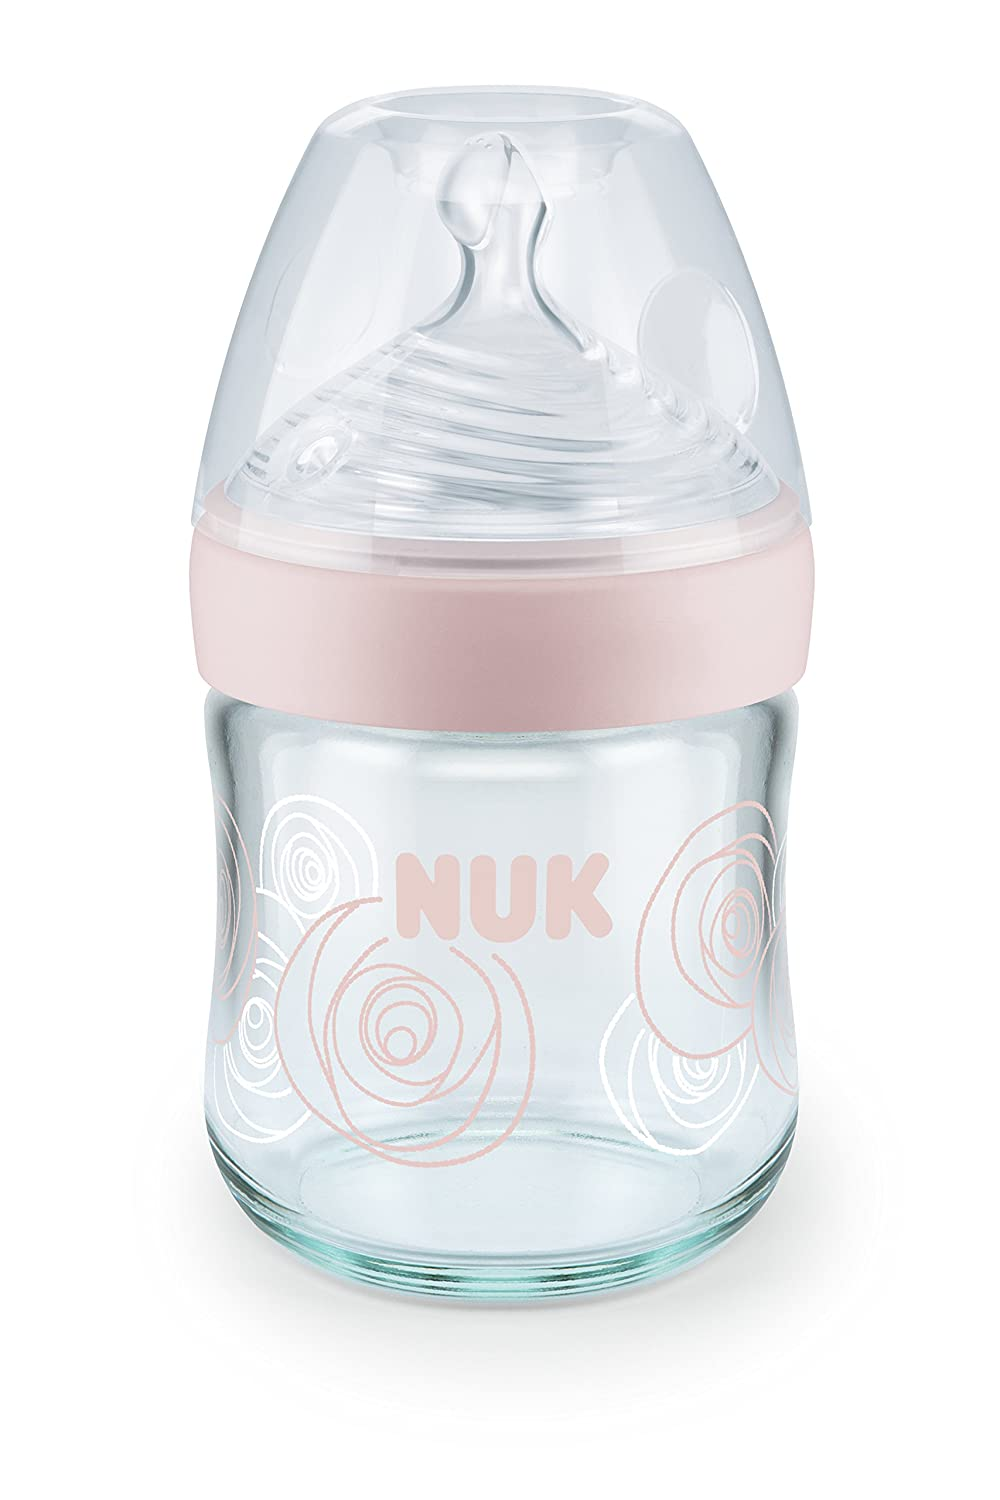 NUK Nature Sense Glass Bottle with Silicone 0-6 Months, S (3 Tiny Openings for Breast Milk, Tea, Water), Holds 120 m Pink